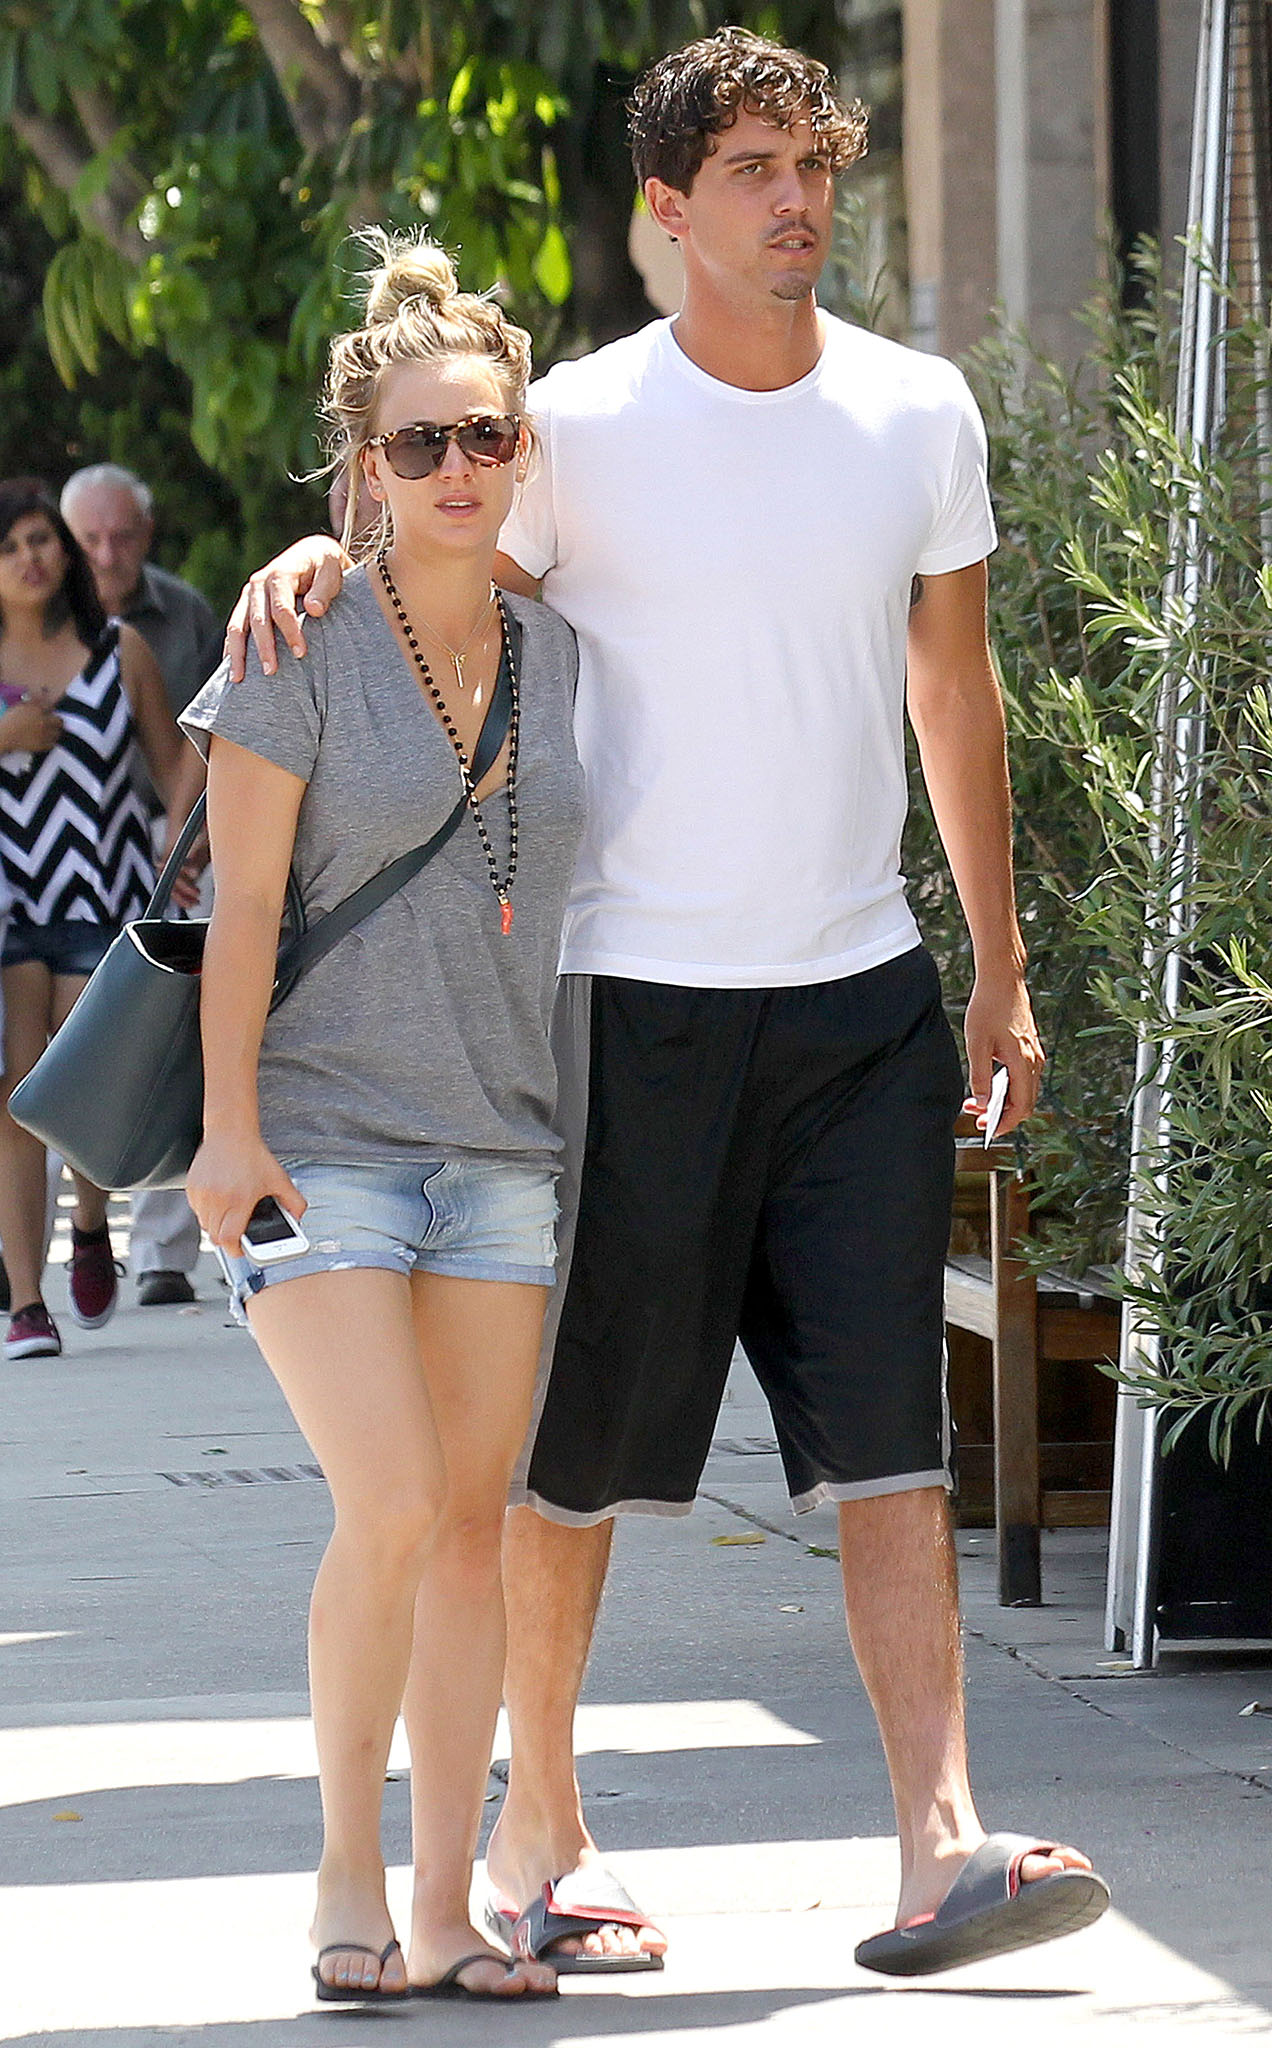 Kaley Cuoco and Ryan Sweeting look cozy on their way to lunch on Aug. 3 (AKM-GSI)